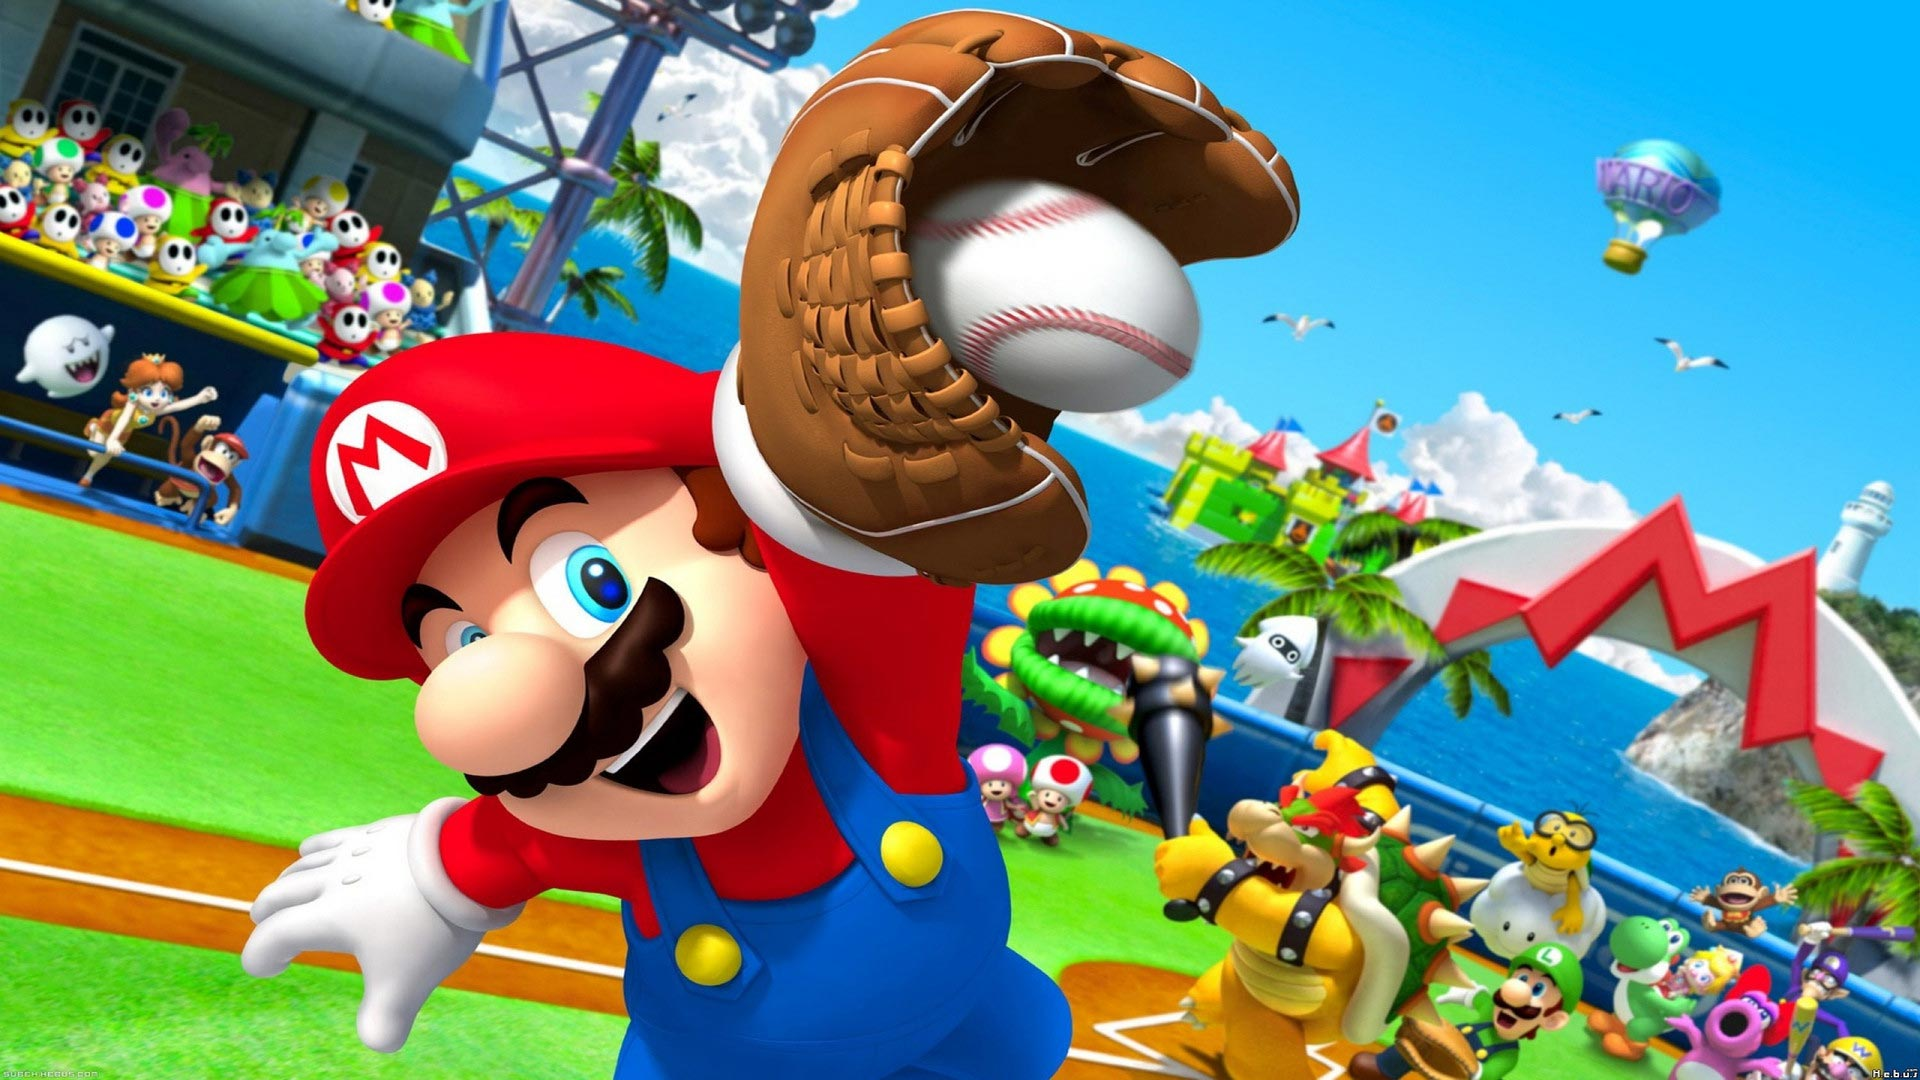 Workaholic Mario seems to have 7 jobs